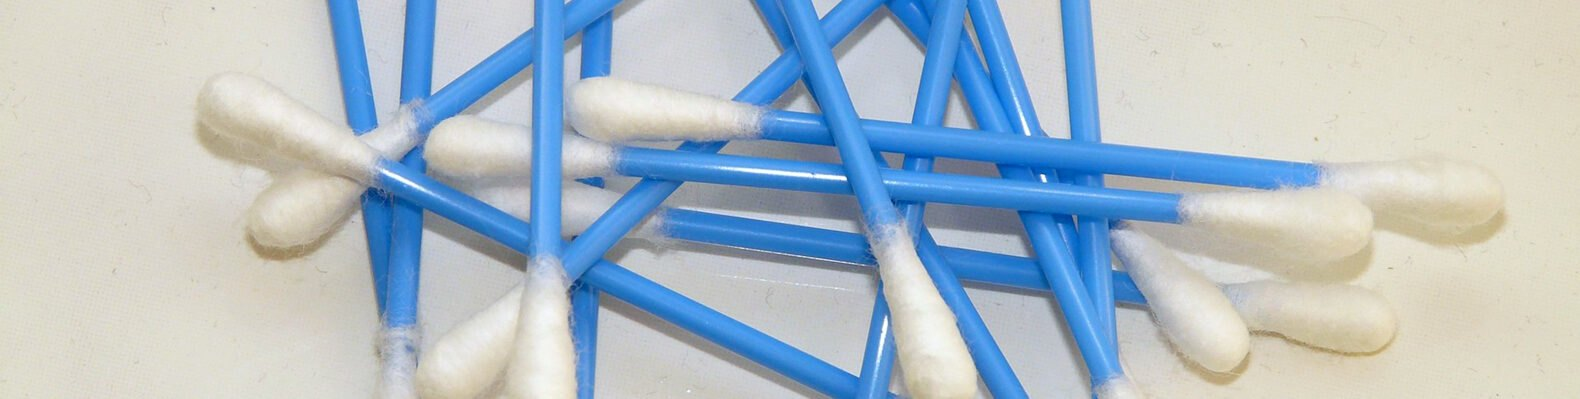 cotton swabs with blue plastic stems